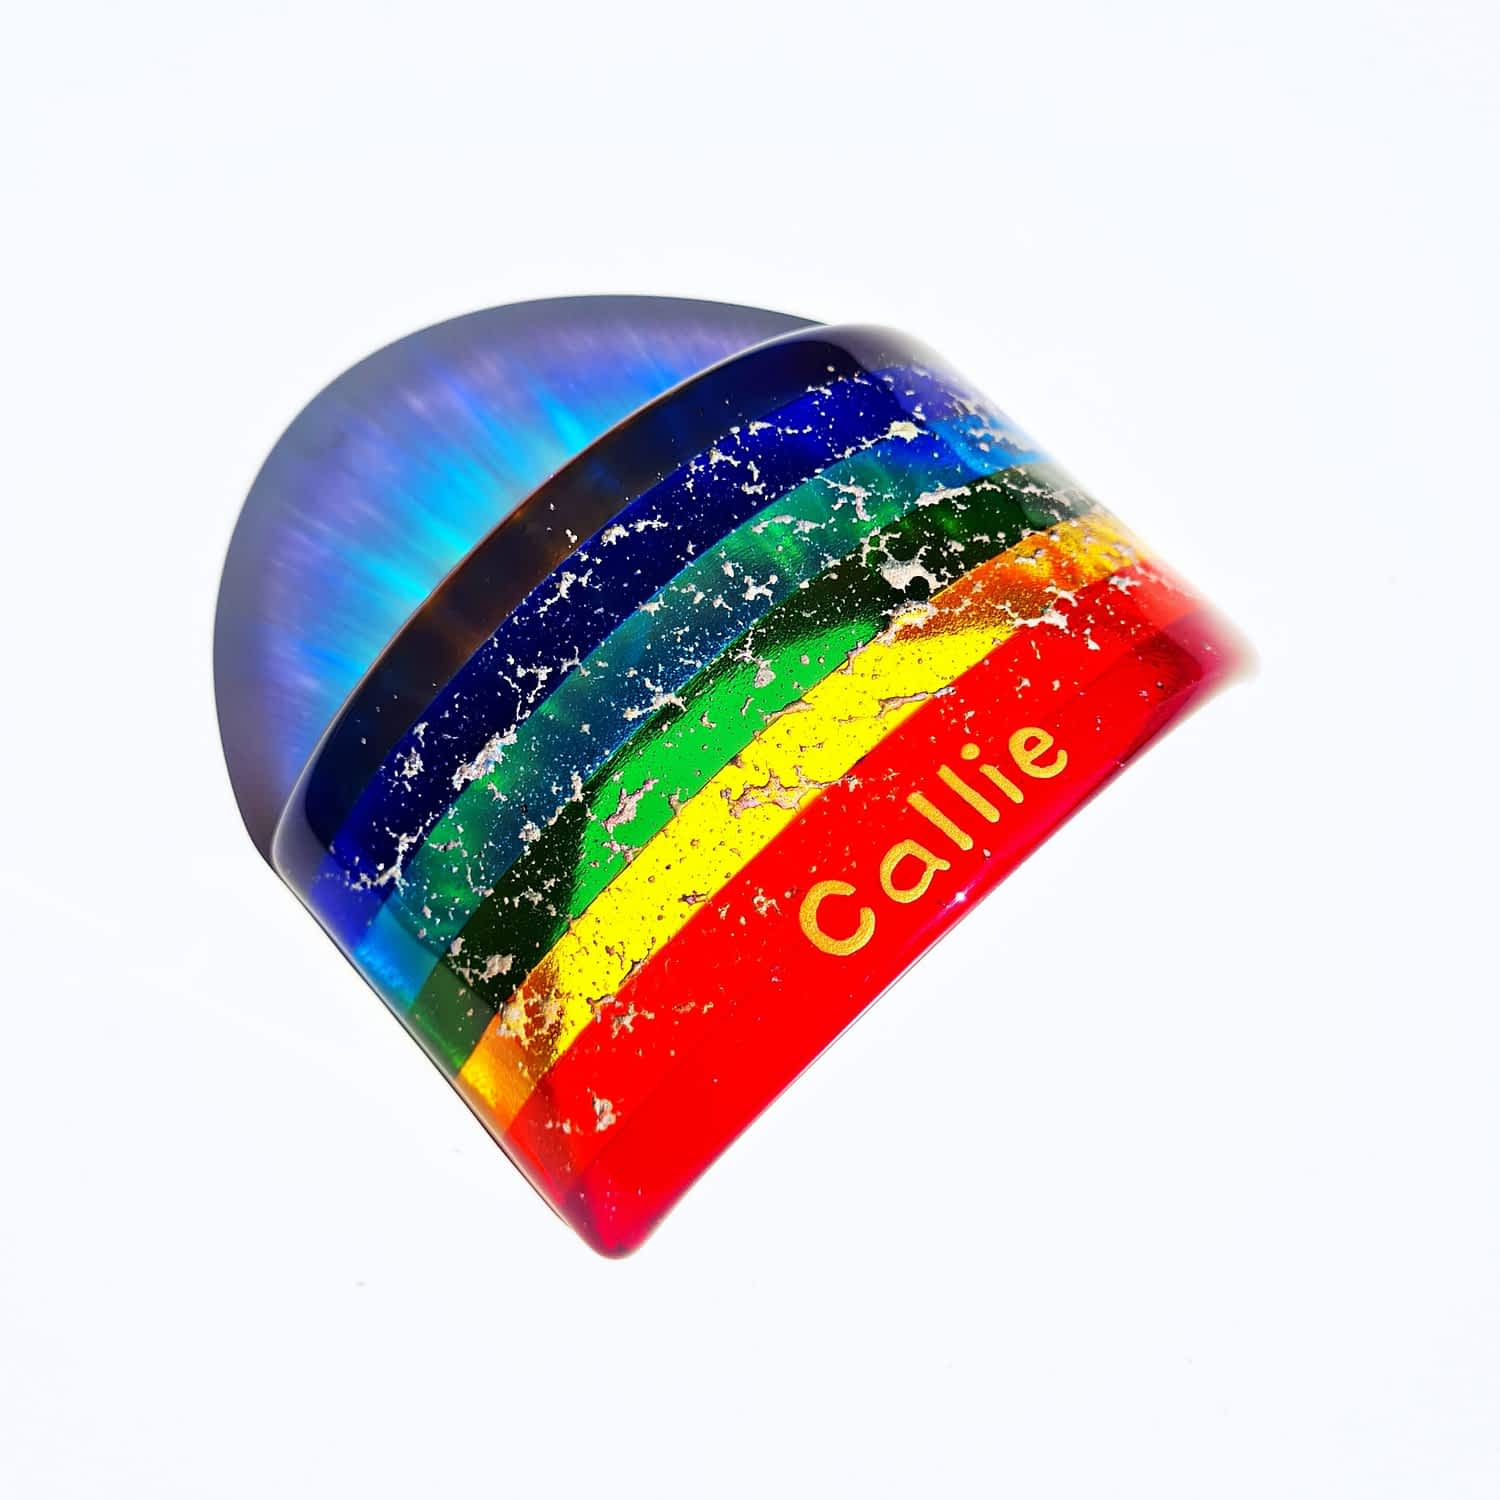 A Personalised Rainbow Bridge with cremation ashes fused insode the glass, on a white background.